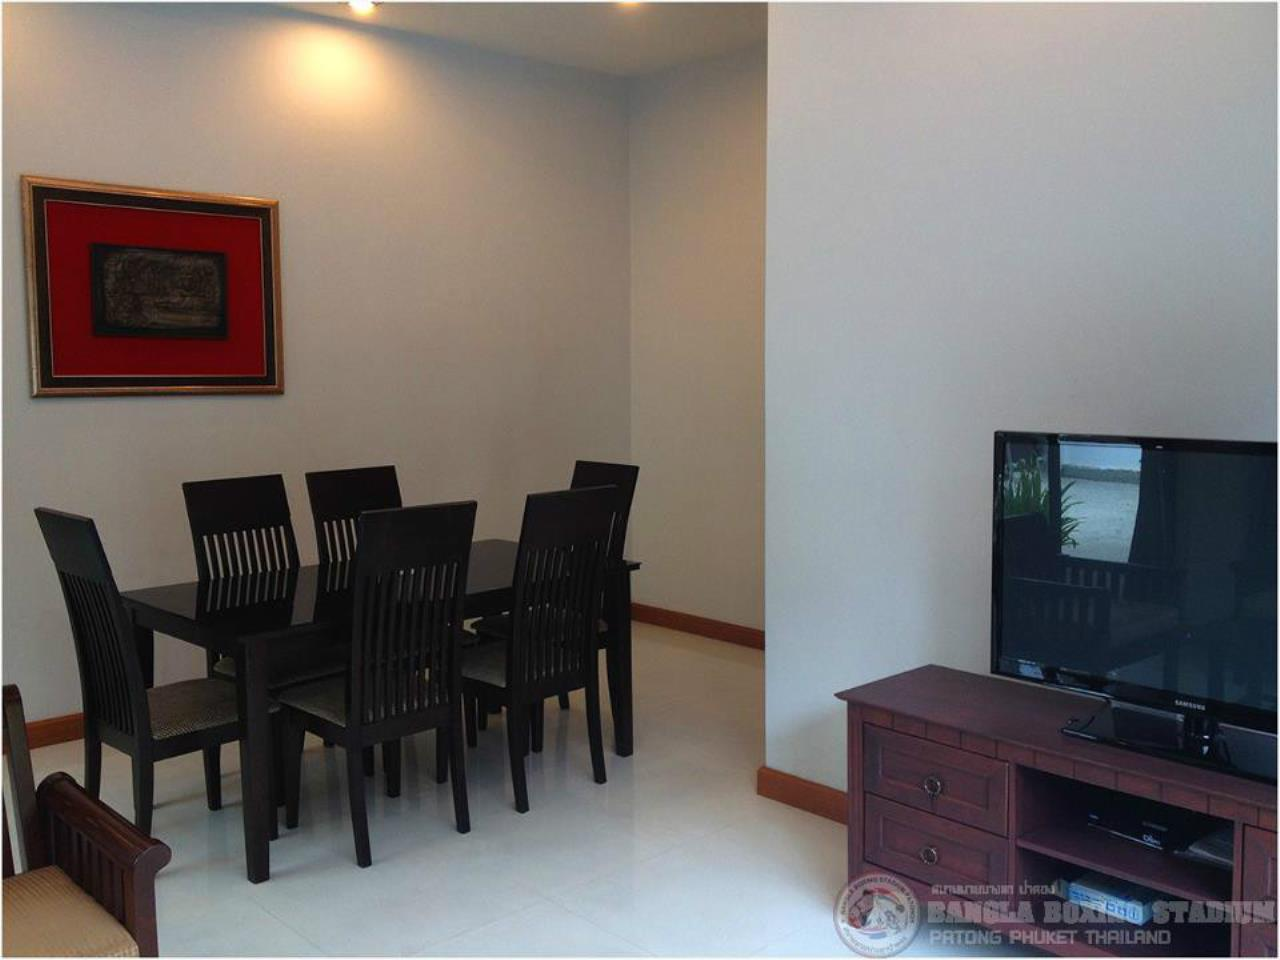 REAL Phuket  Agency's Land & House - Peaceful 3-Bedroom Pool Villa in Chalong 4